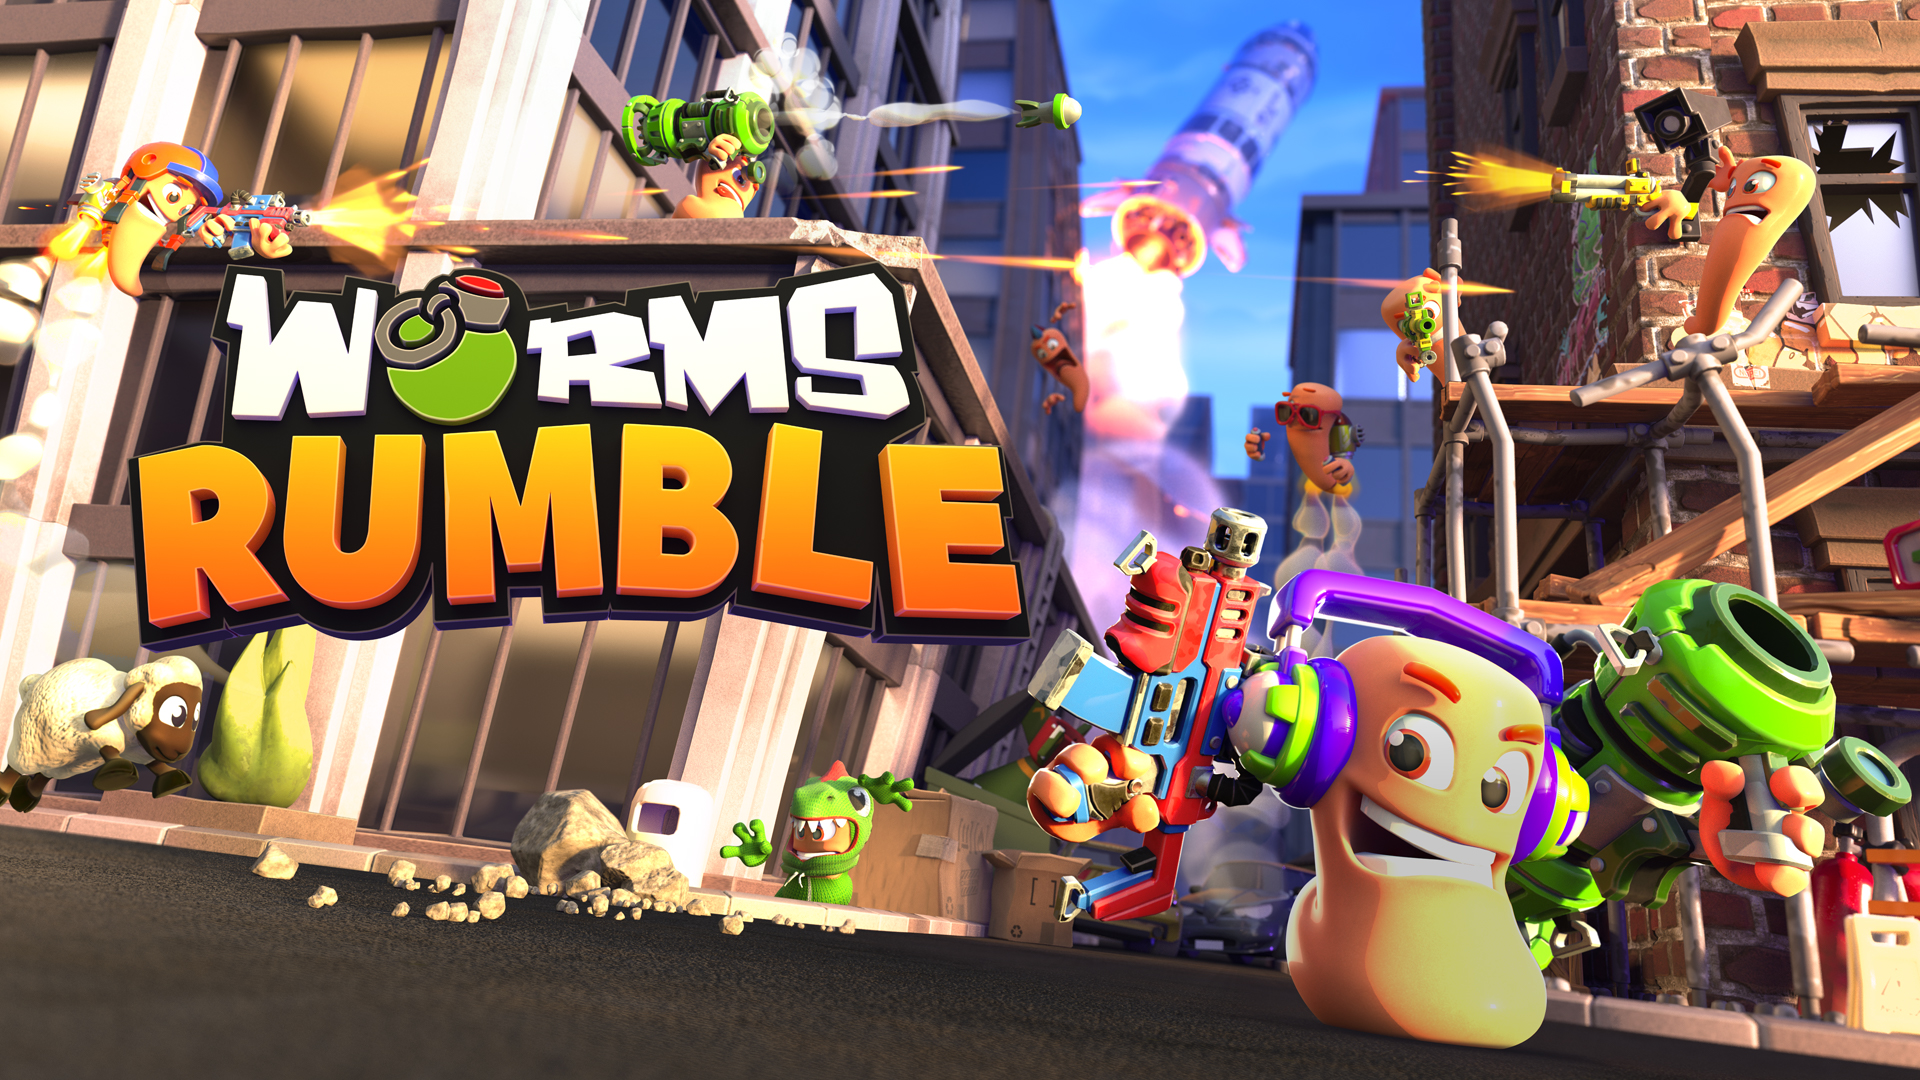 Worms Rumble is a this month's PS5 freebie